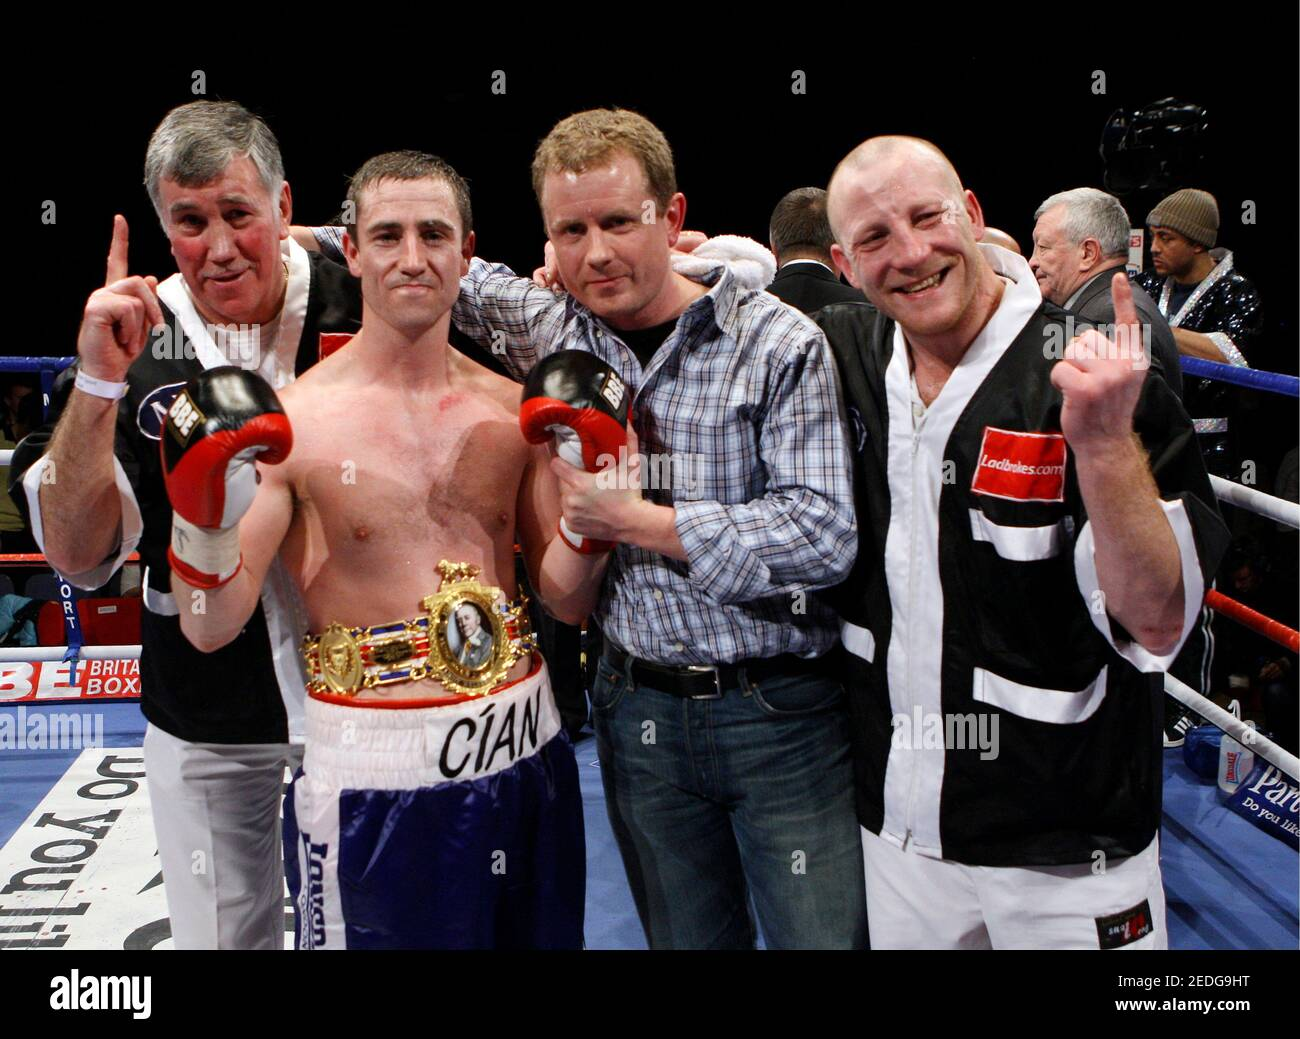 Boxing - Colin Lynes v Paul McCloskey - British Light-Welterweight Title - Goresbrook Leisure Centre, Dagenham - 5/12/08  Paul McCloskey celebrates victory with the belt and trainer John Breen (L)  Mandatory Credit: Action Images / Andrew Couldridge Stock Photo